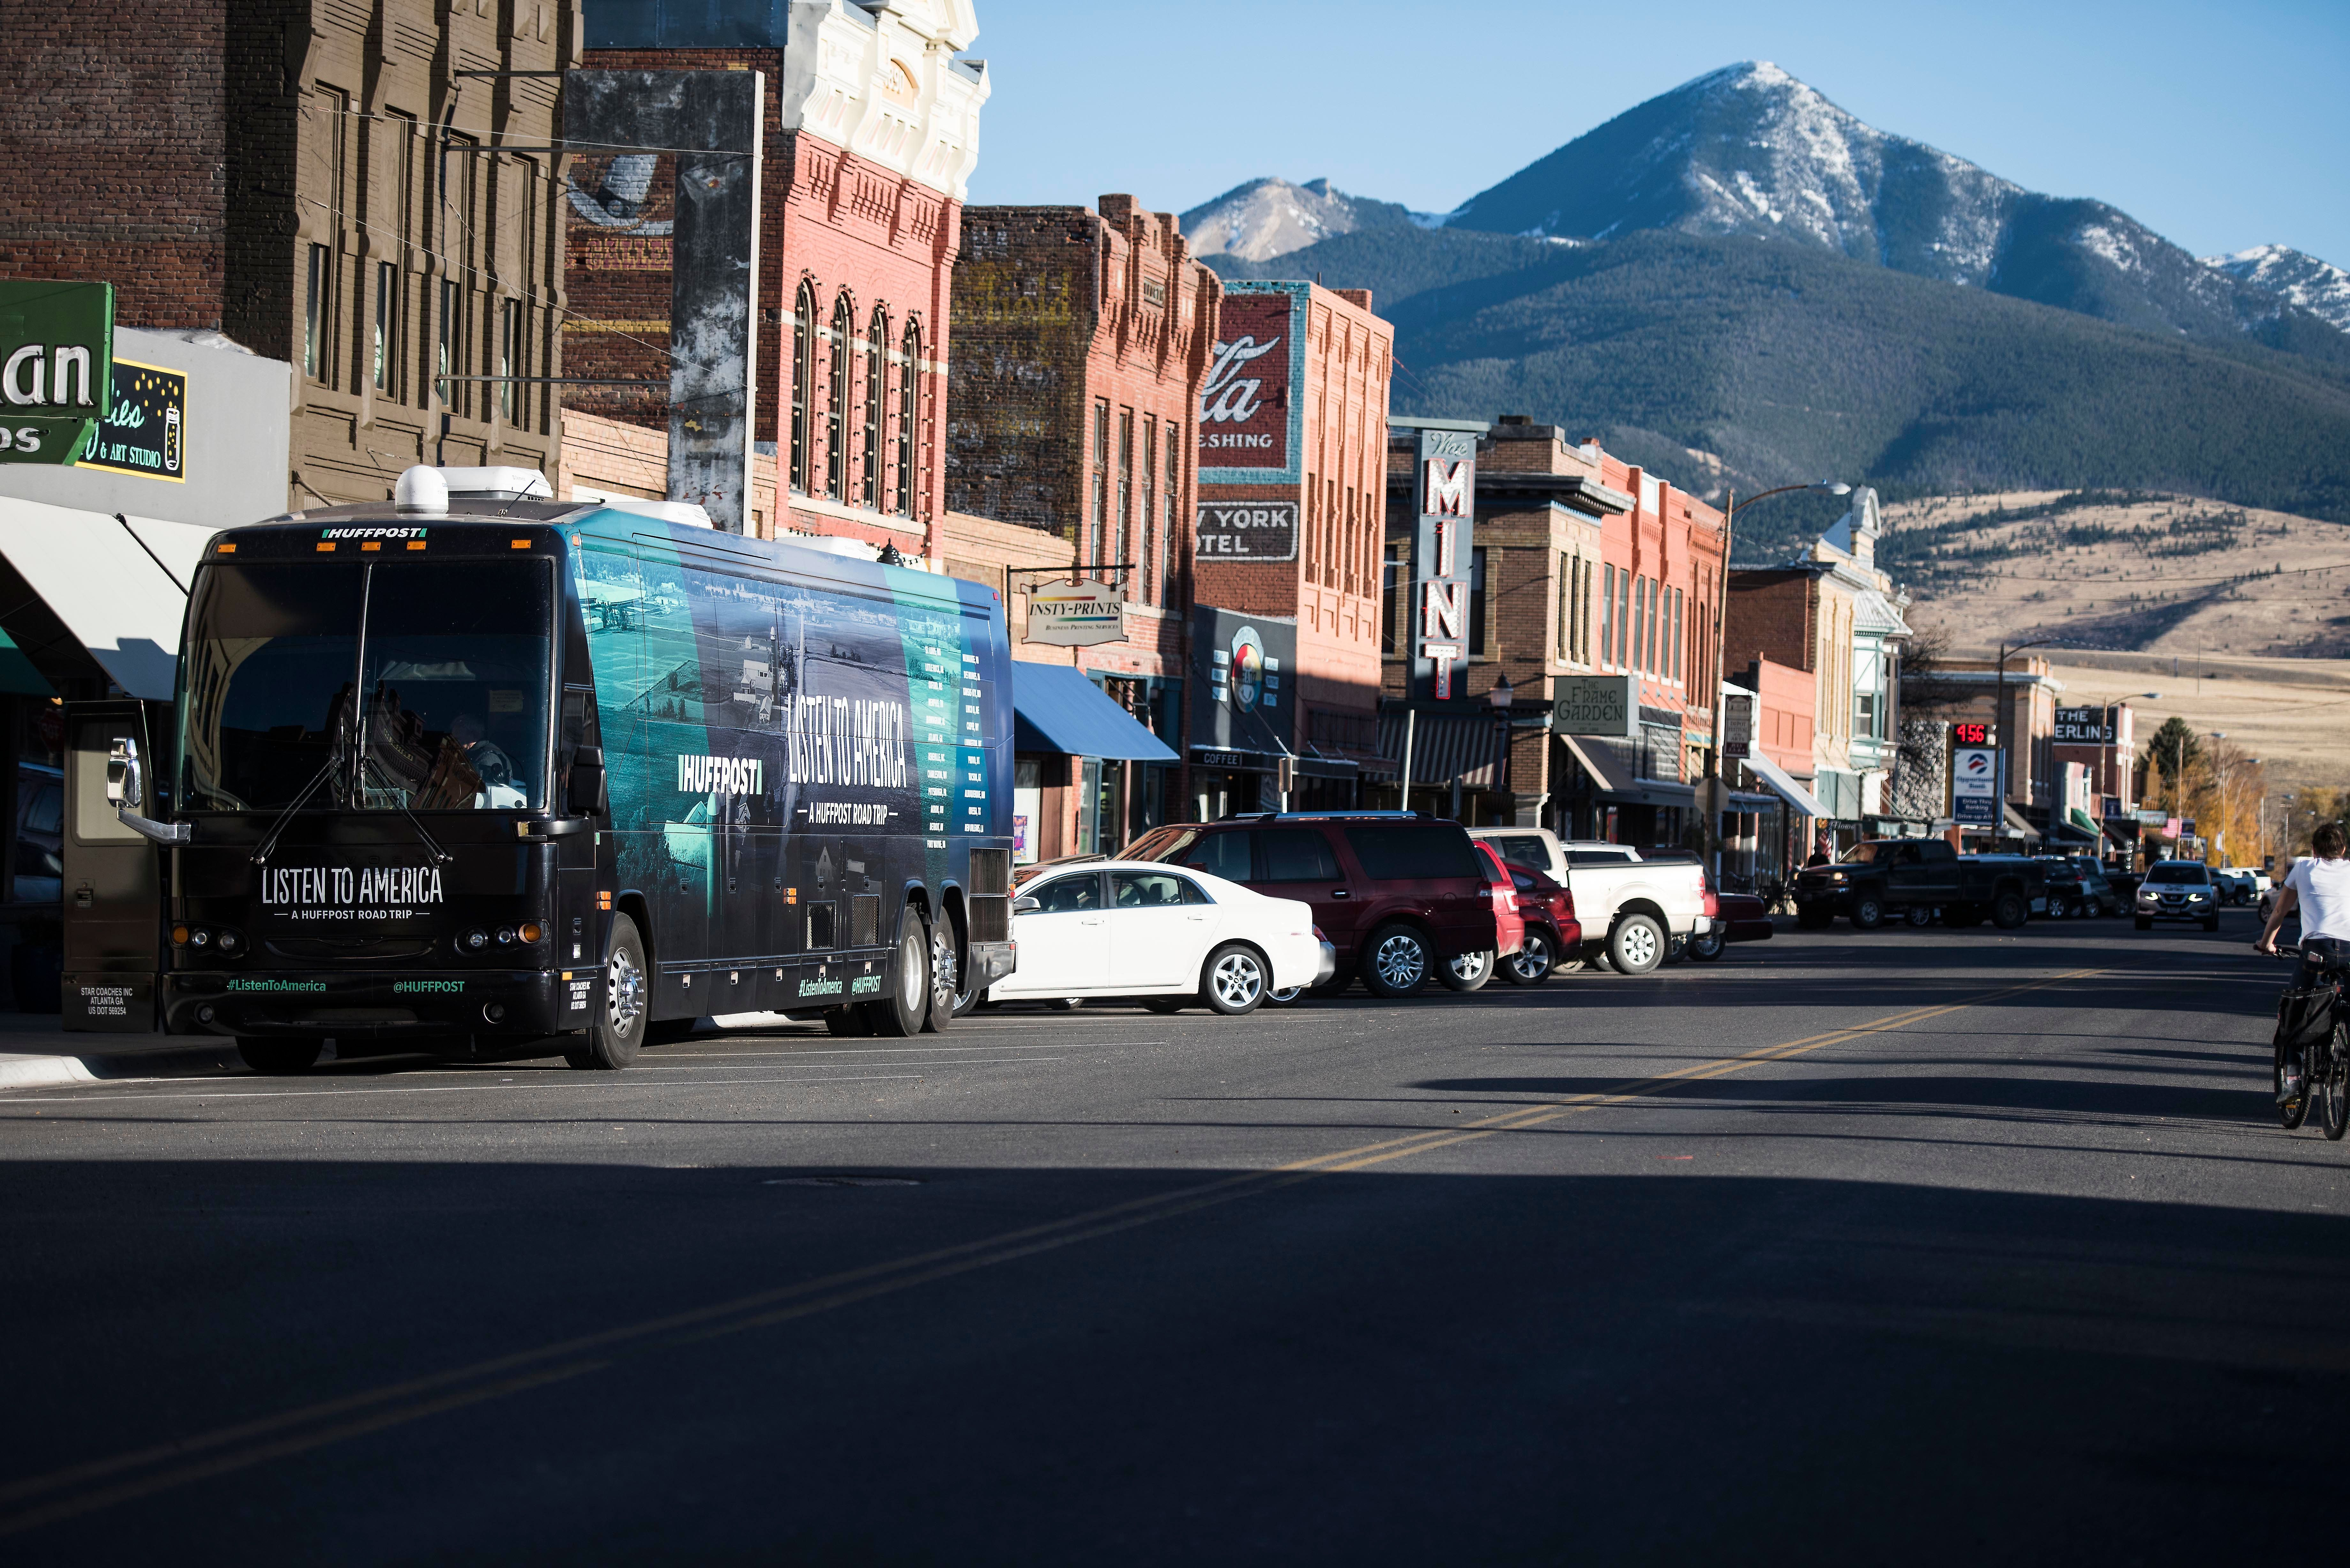 """LIVINGSTON, MT - OCTOBER 16: The tour bus sits in front of the city skyline during HuffPost's visit to Livingston, Montana, on Oct. 16, 2017, as part of """"Listen To America: A HuffPost Road Trip."""" The outlet will visit more than 20 cities on its tour across the country. (Photo by Damon Dahlen/HuffPost) *** Local Caption ***"""